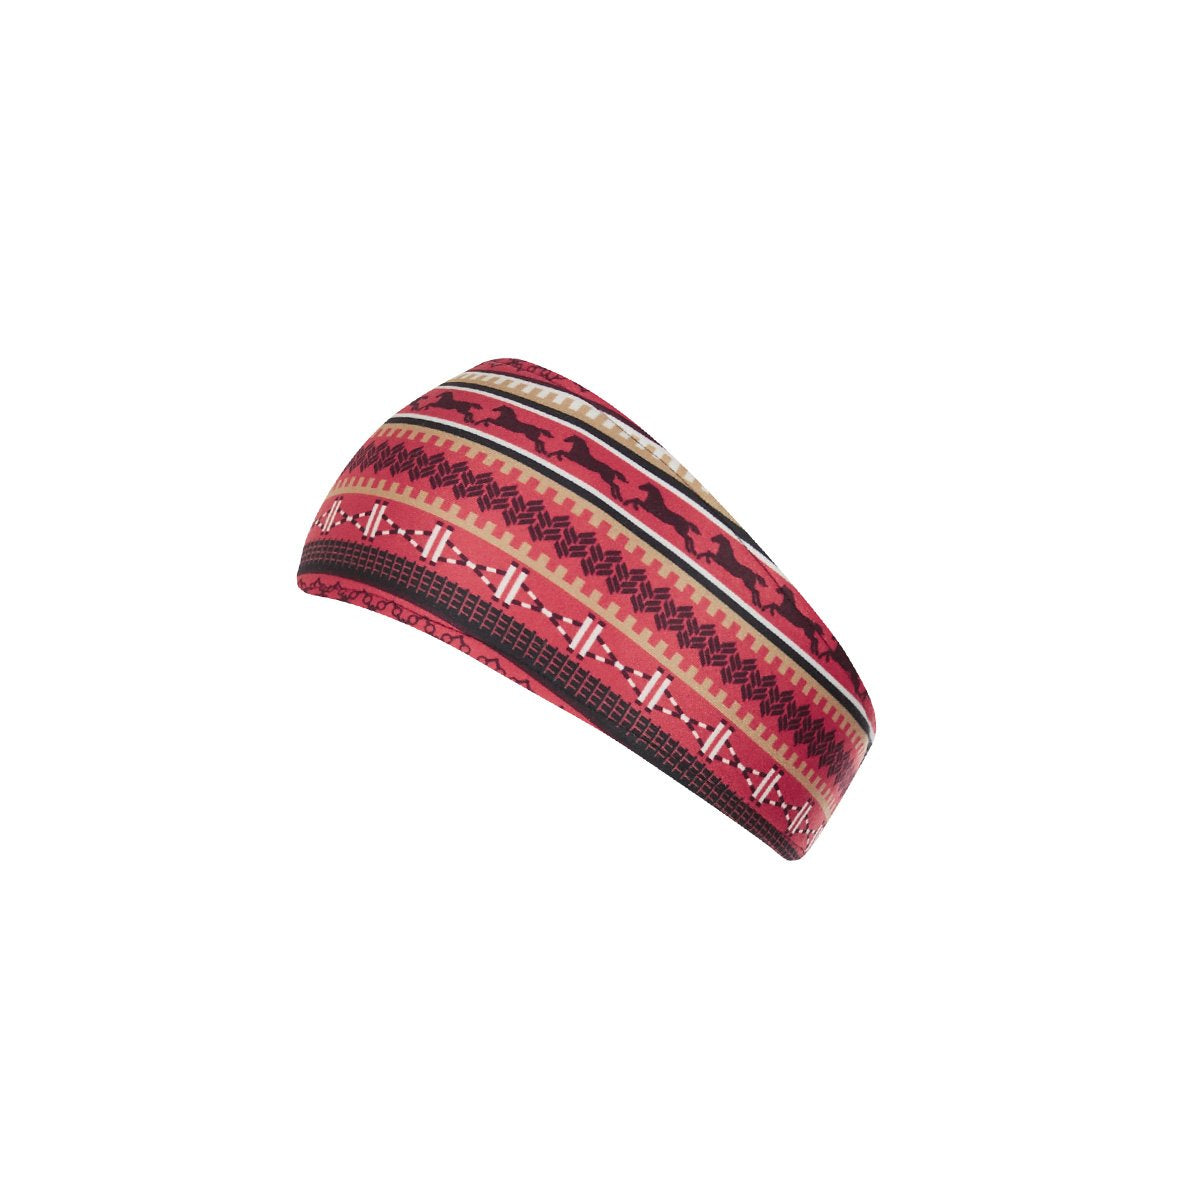 Kerrits Fair Isle Fleece Headband